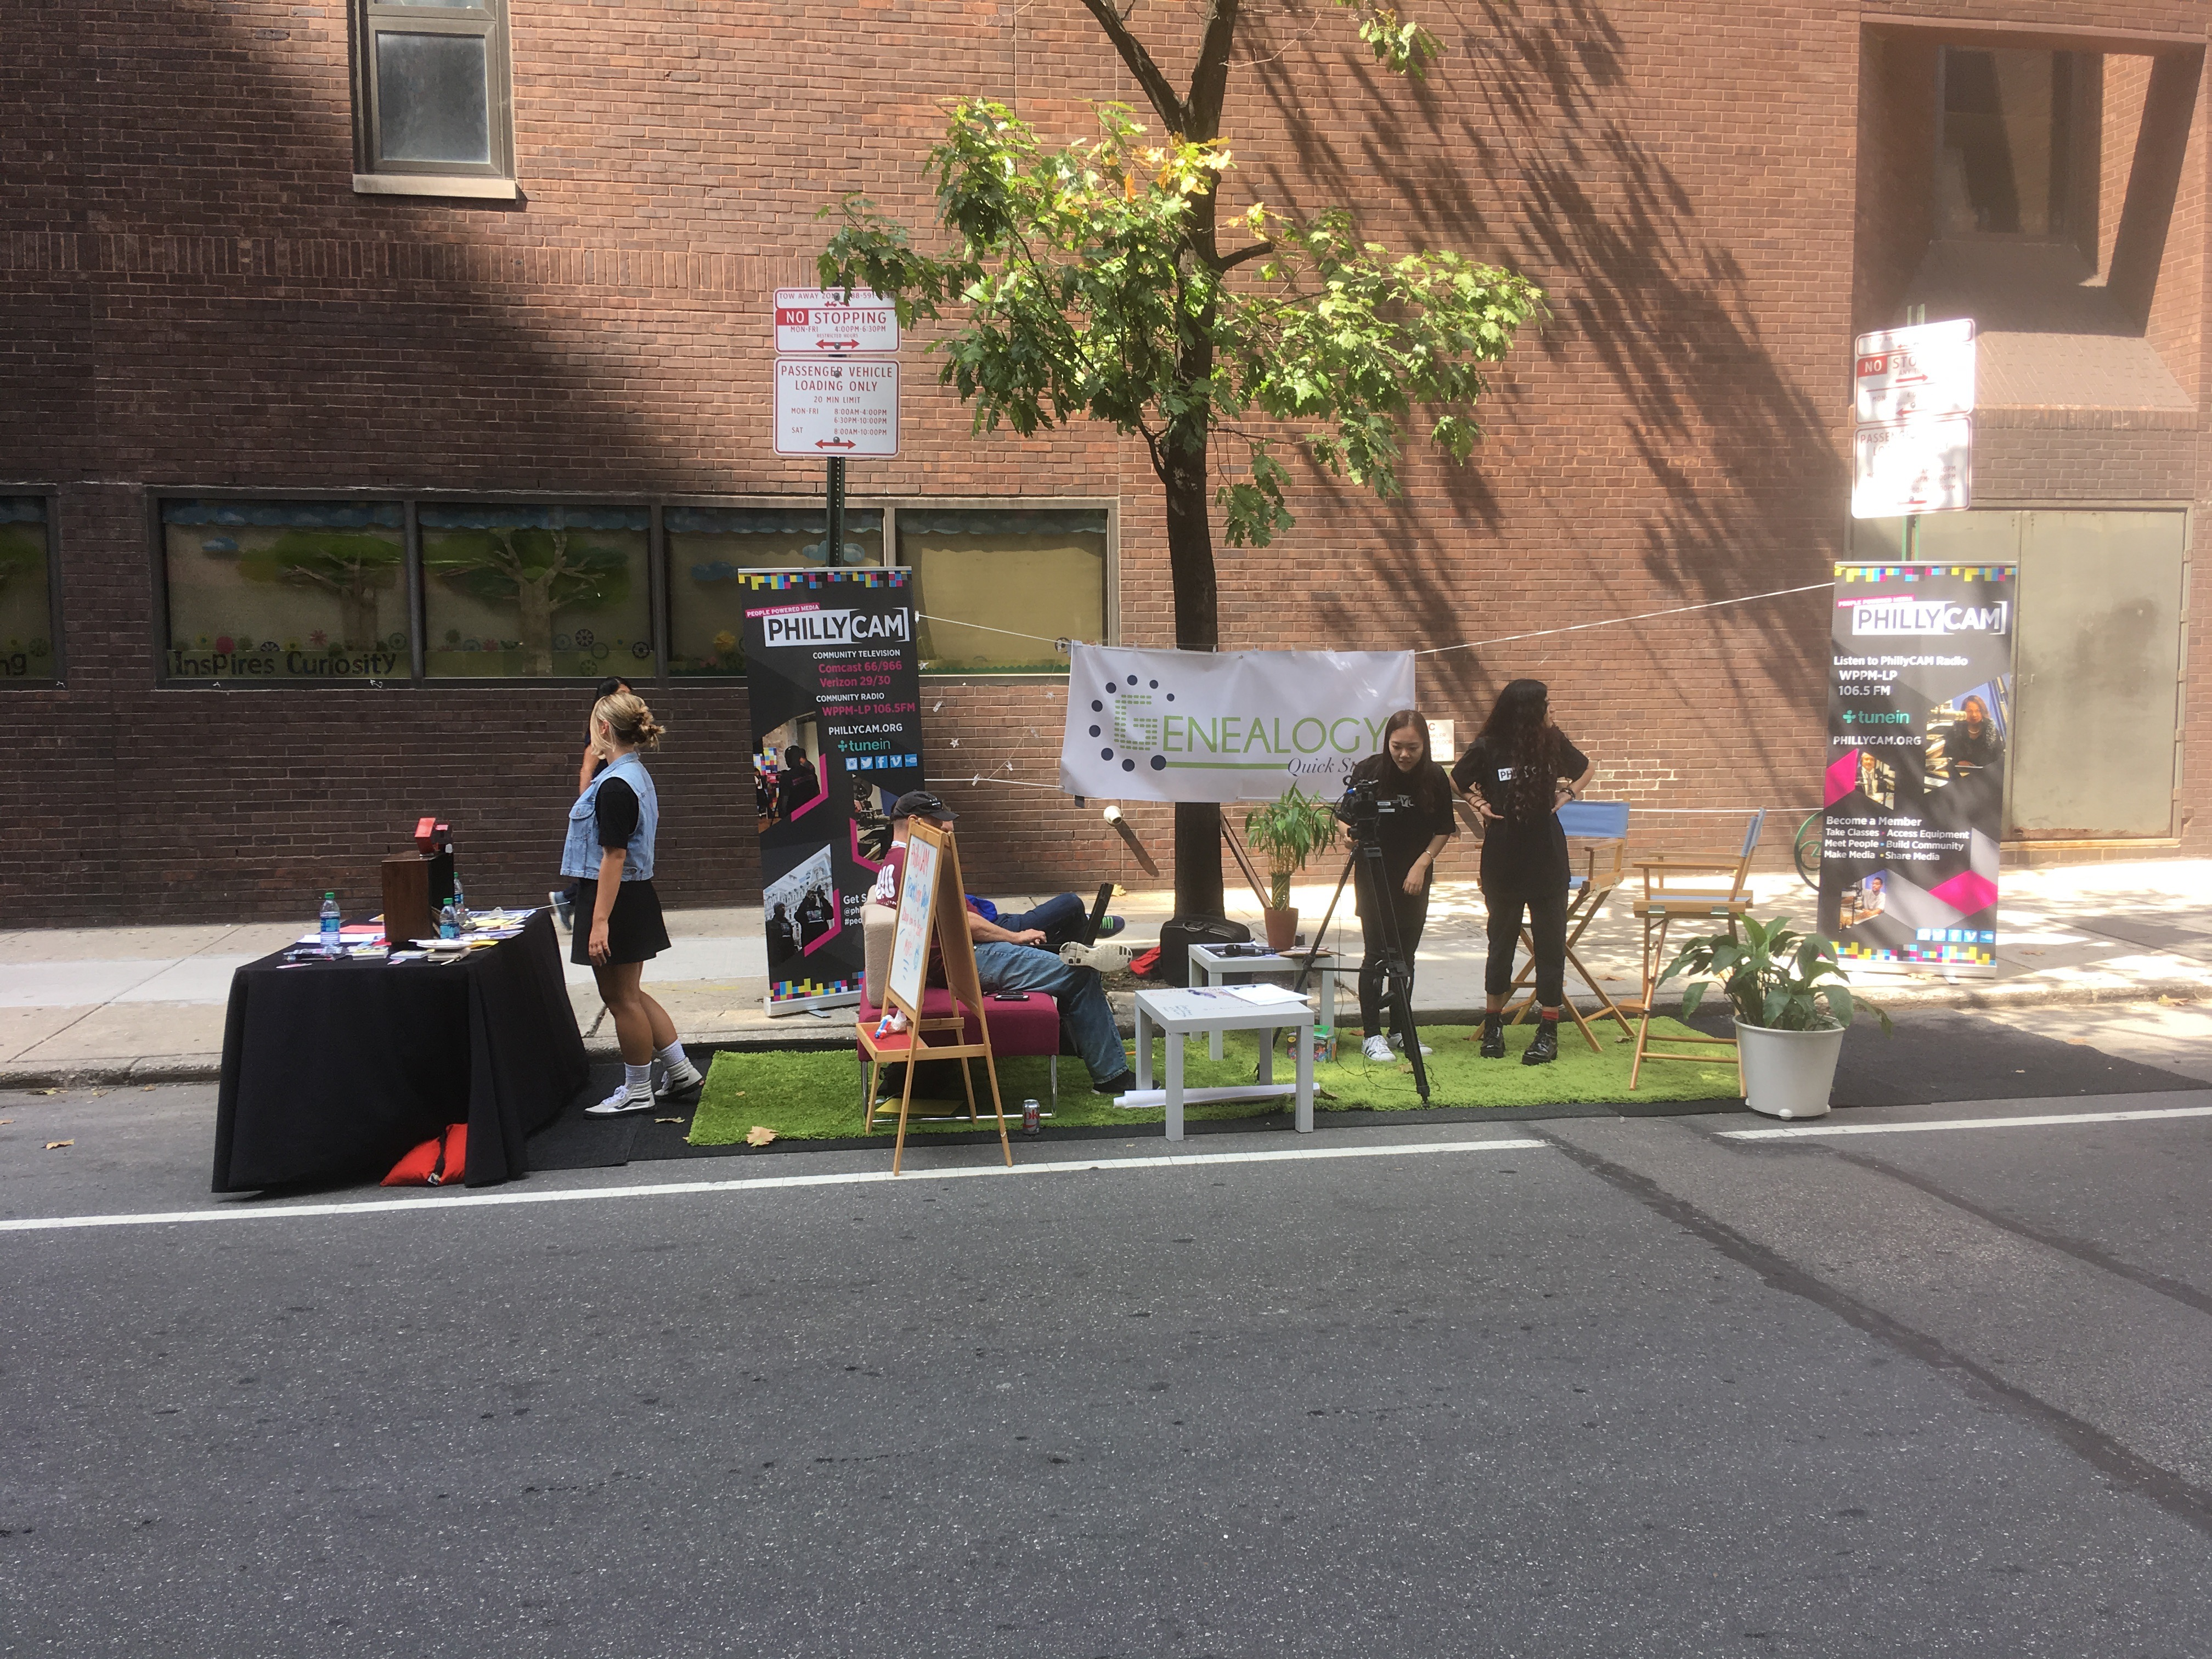 PhillyCAM offered genealogy tests and a chance to get on air at their Park(ing) Day pop-up on 7th near Ranstead